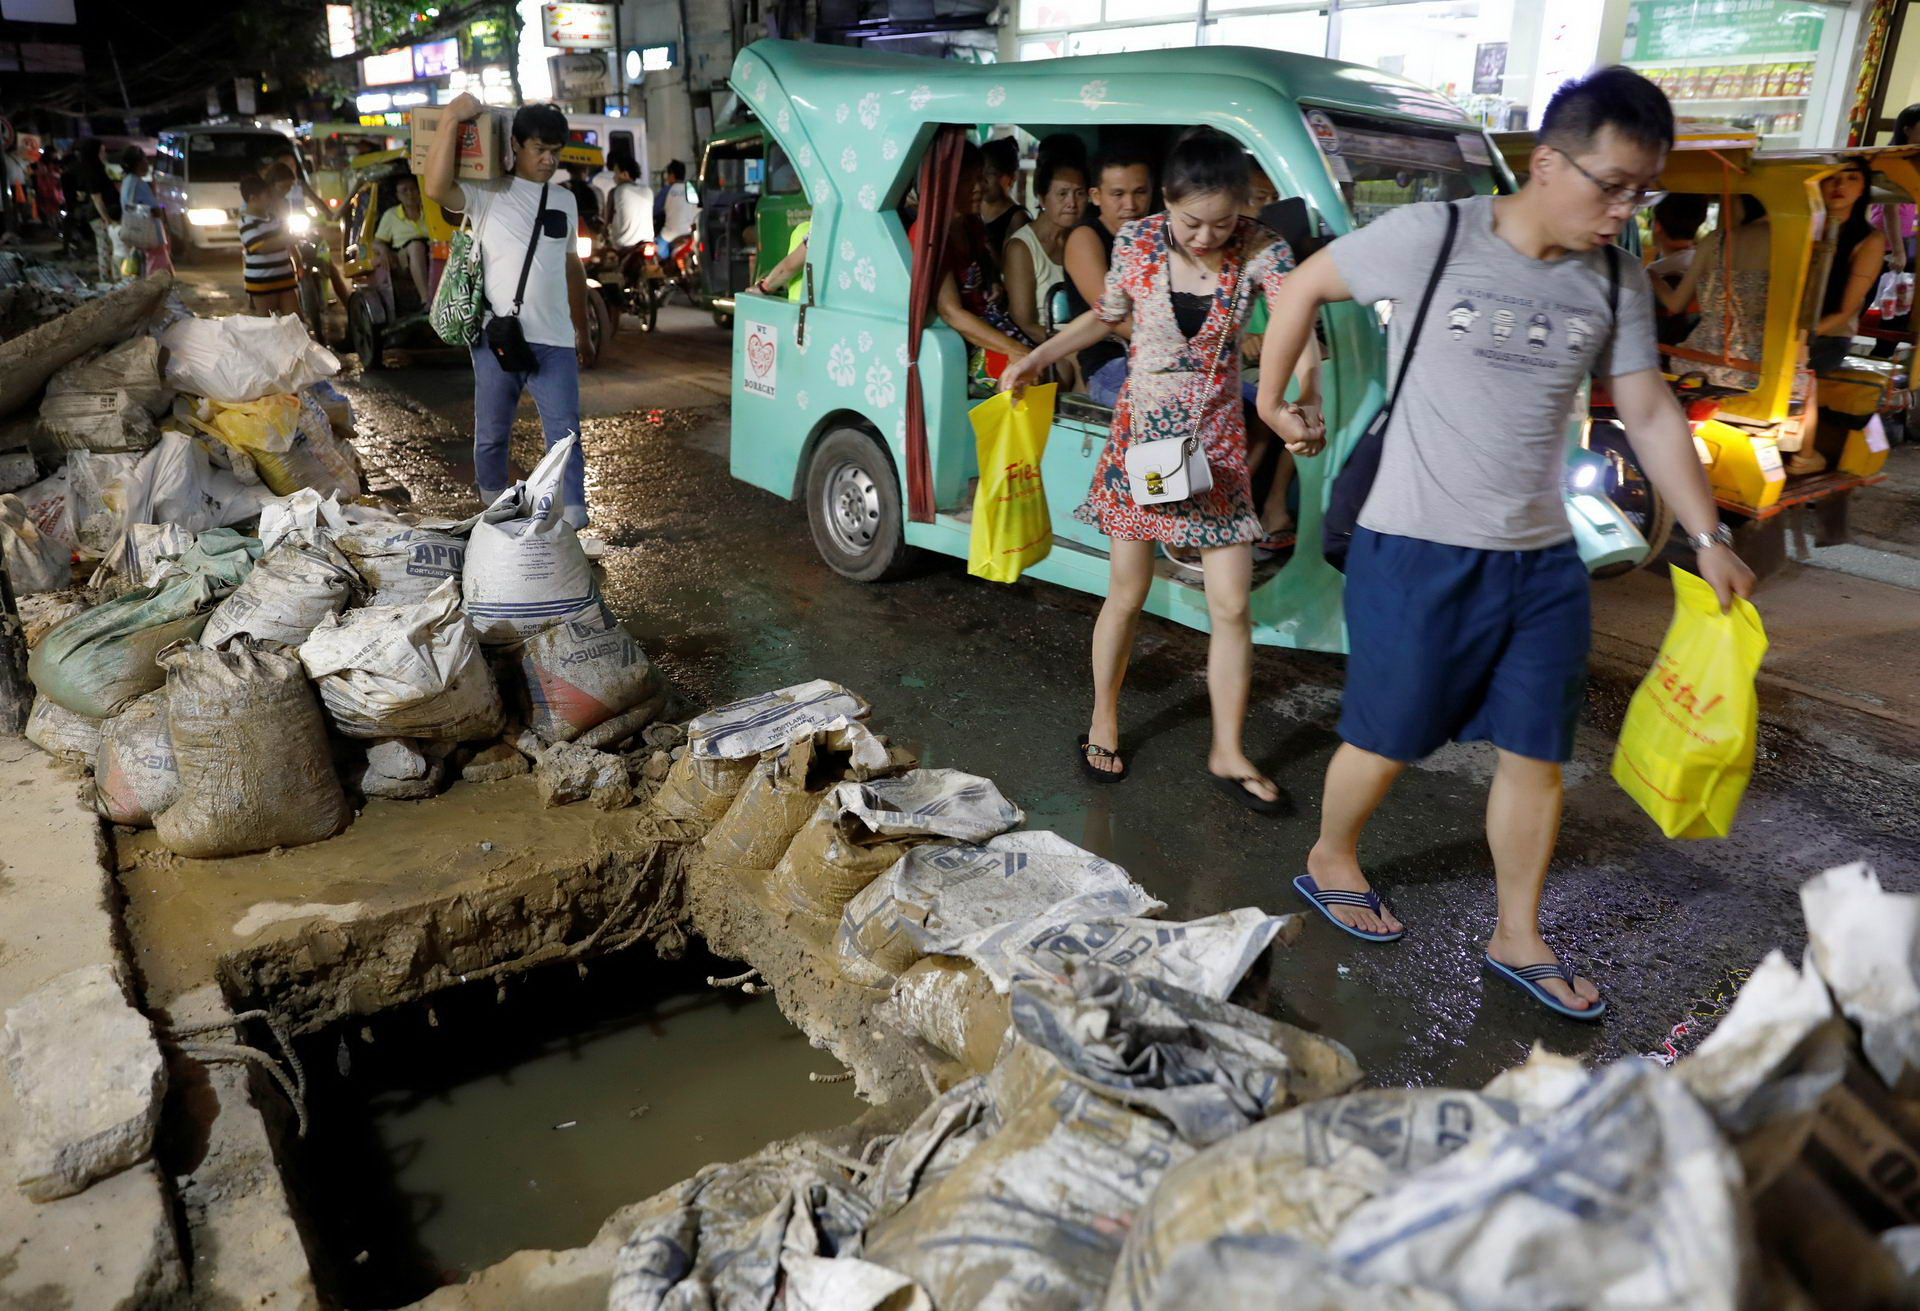 Tourists walk past a clogged sewer and uncollected sacks containing waste from the sewers along a road at Boracay